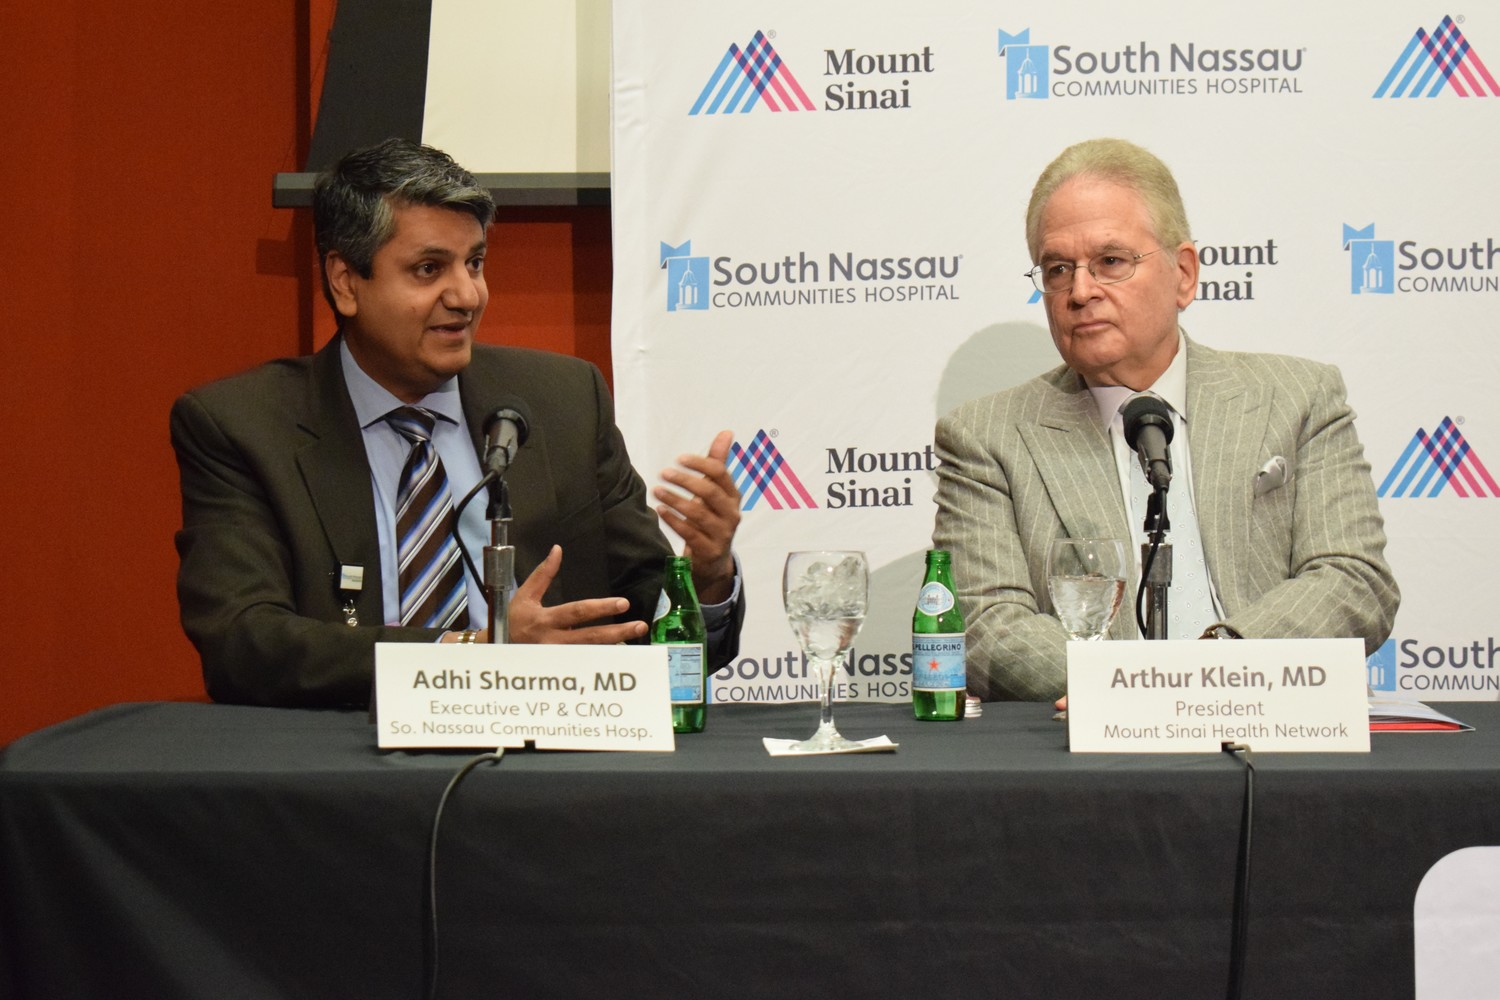 SNCH Vice President and Chief Medical Officer Adhi Sharma, left, and Mount Sinai President Dr. Arthur Klein each explained the long- and short-term goals of the partnership.